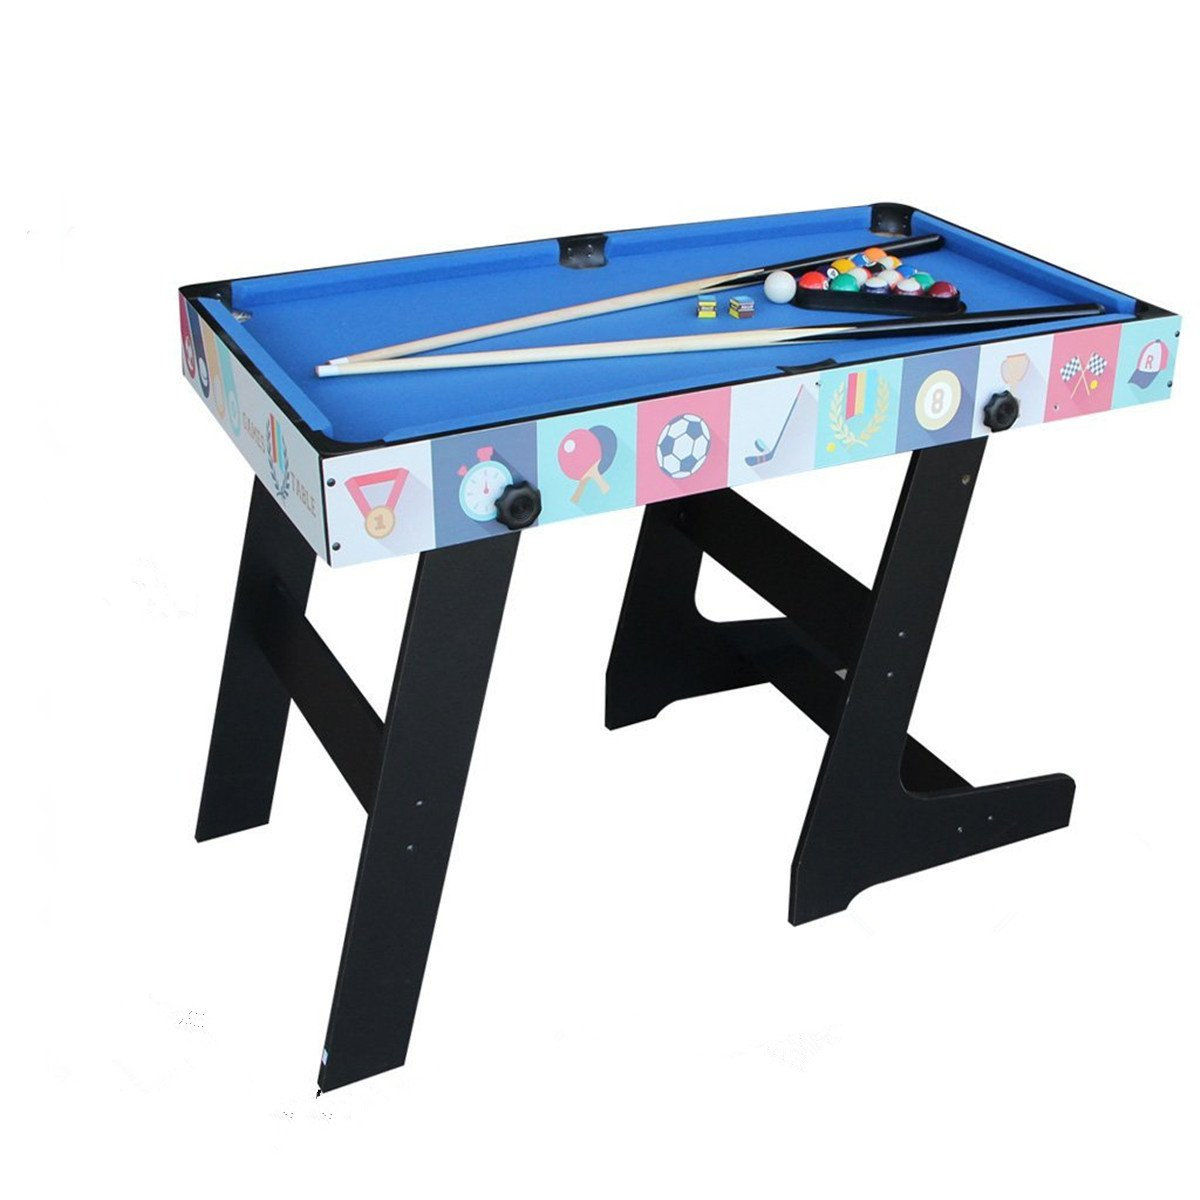 4FT 4 In 1 Multi Combo Game Table  Hockey Table, Foosball Table, Pool Table,  Table Tennis Table Funmall